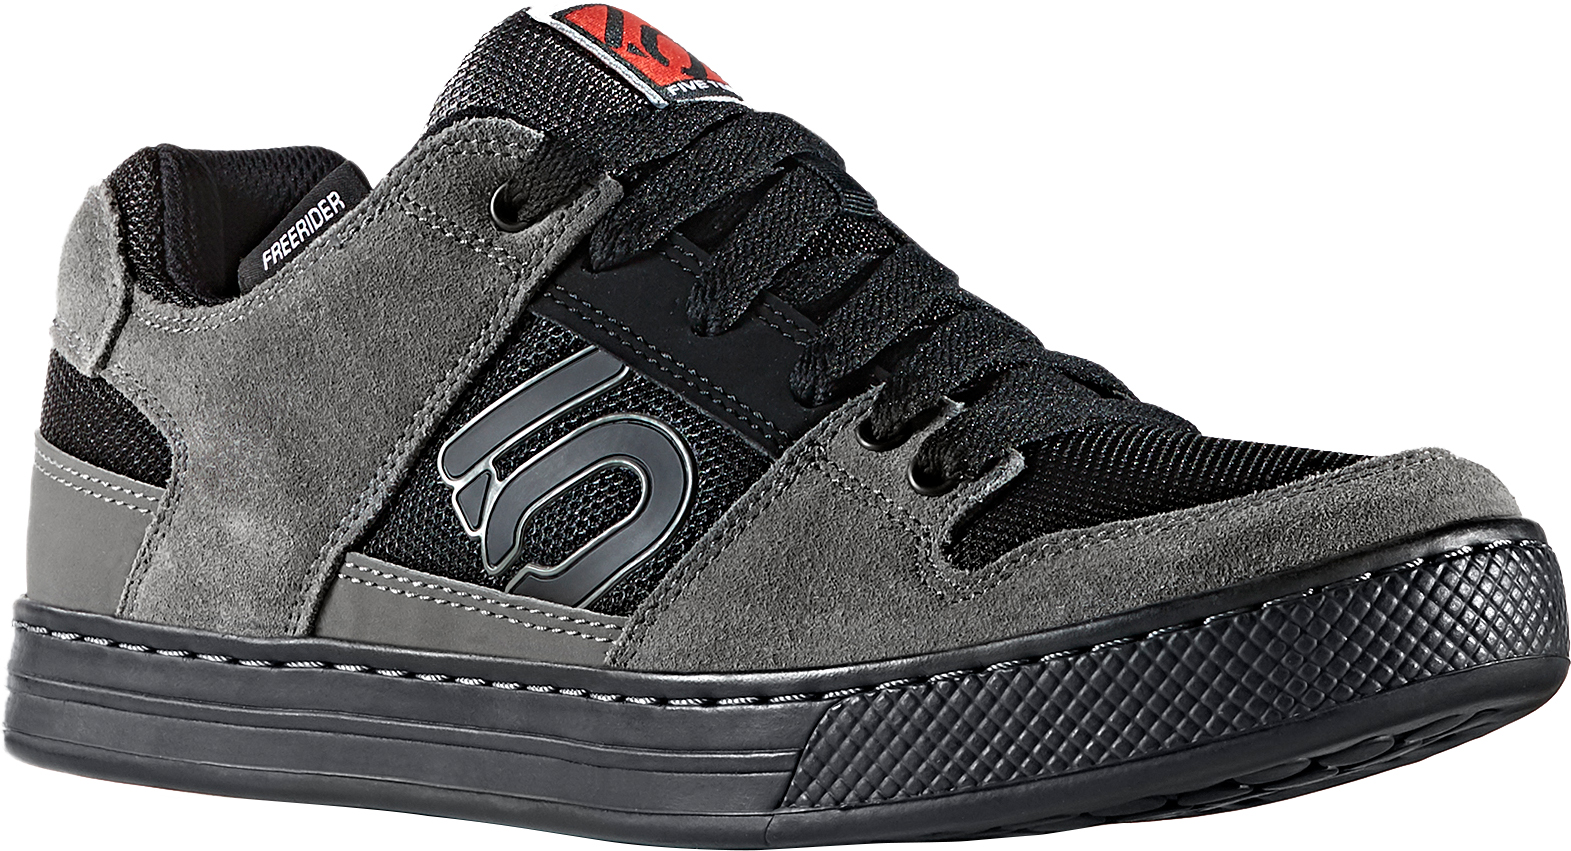 53ad64db383c Five Ten Freerider Shoes - Men s